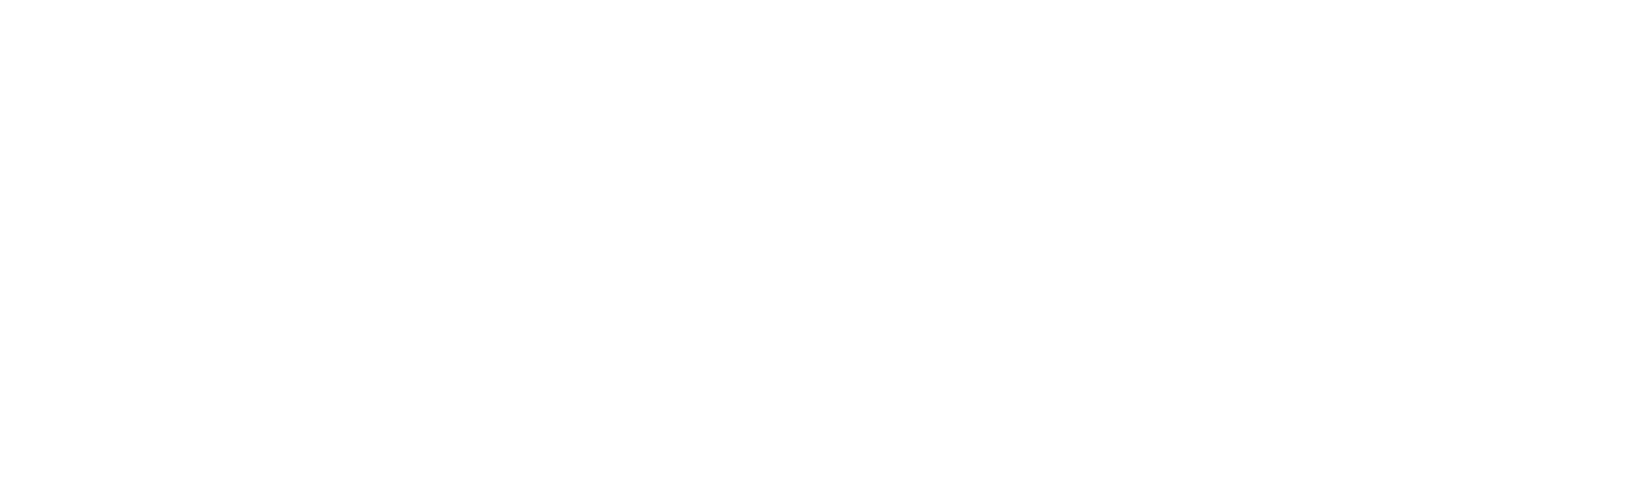 City of Airdrie Logo